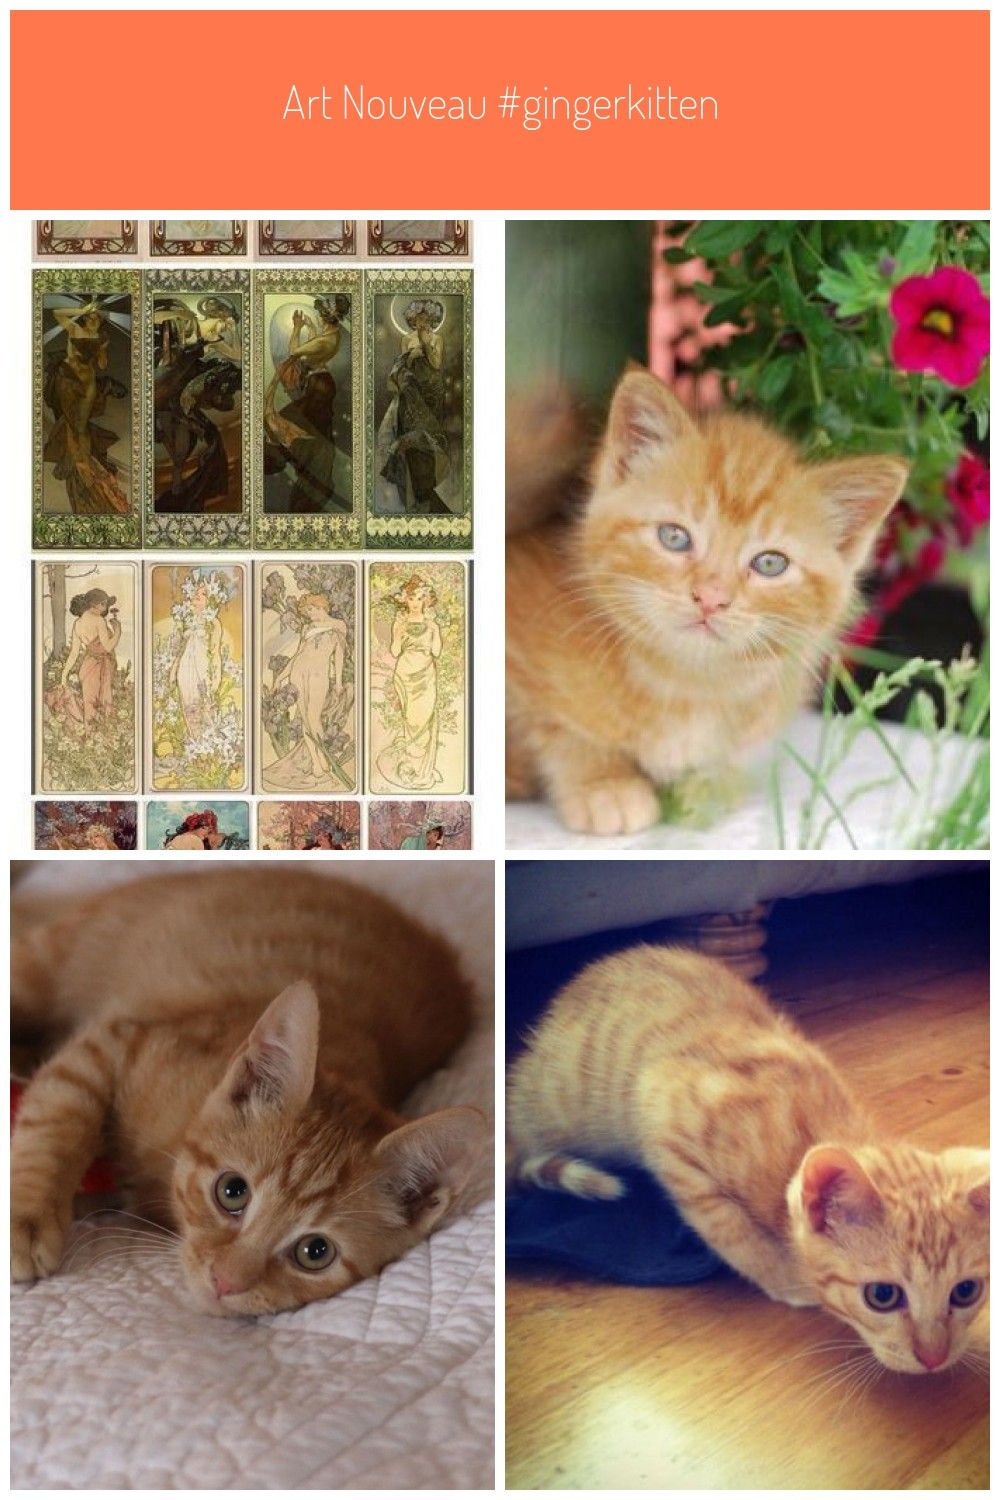 Art Nouveau #gingerkitten Art nouveau Kittens ginger kitten #ginger #Kittens #gingerkitten Art Nouveau #gingerkitten Art nouveau Kittens ginger kitten #ginger #Kittens #gingerkitten Art Nouveau #gingerkitten Art nouveau Kittens ginger kitten #ginger #Kittens #gingerkitten Art Nouveau #gingerkitten Art nouveau Kittens ginger kitten #ginger #Kittens #ginger kittens #gingerkitten